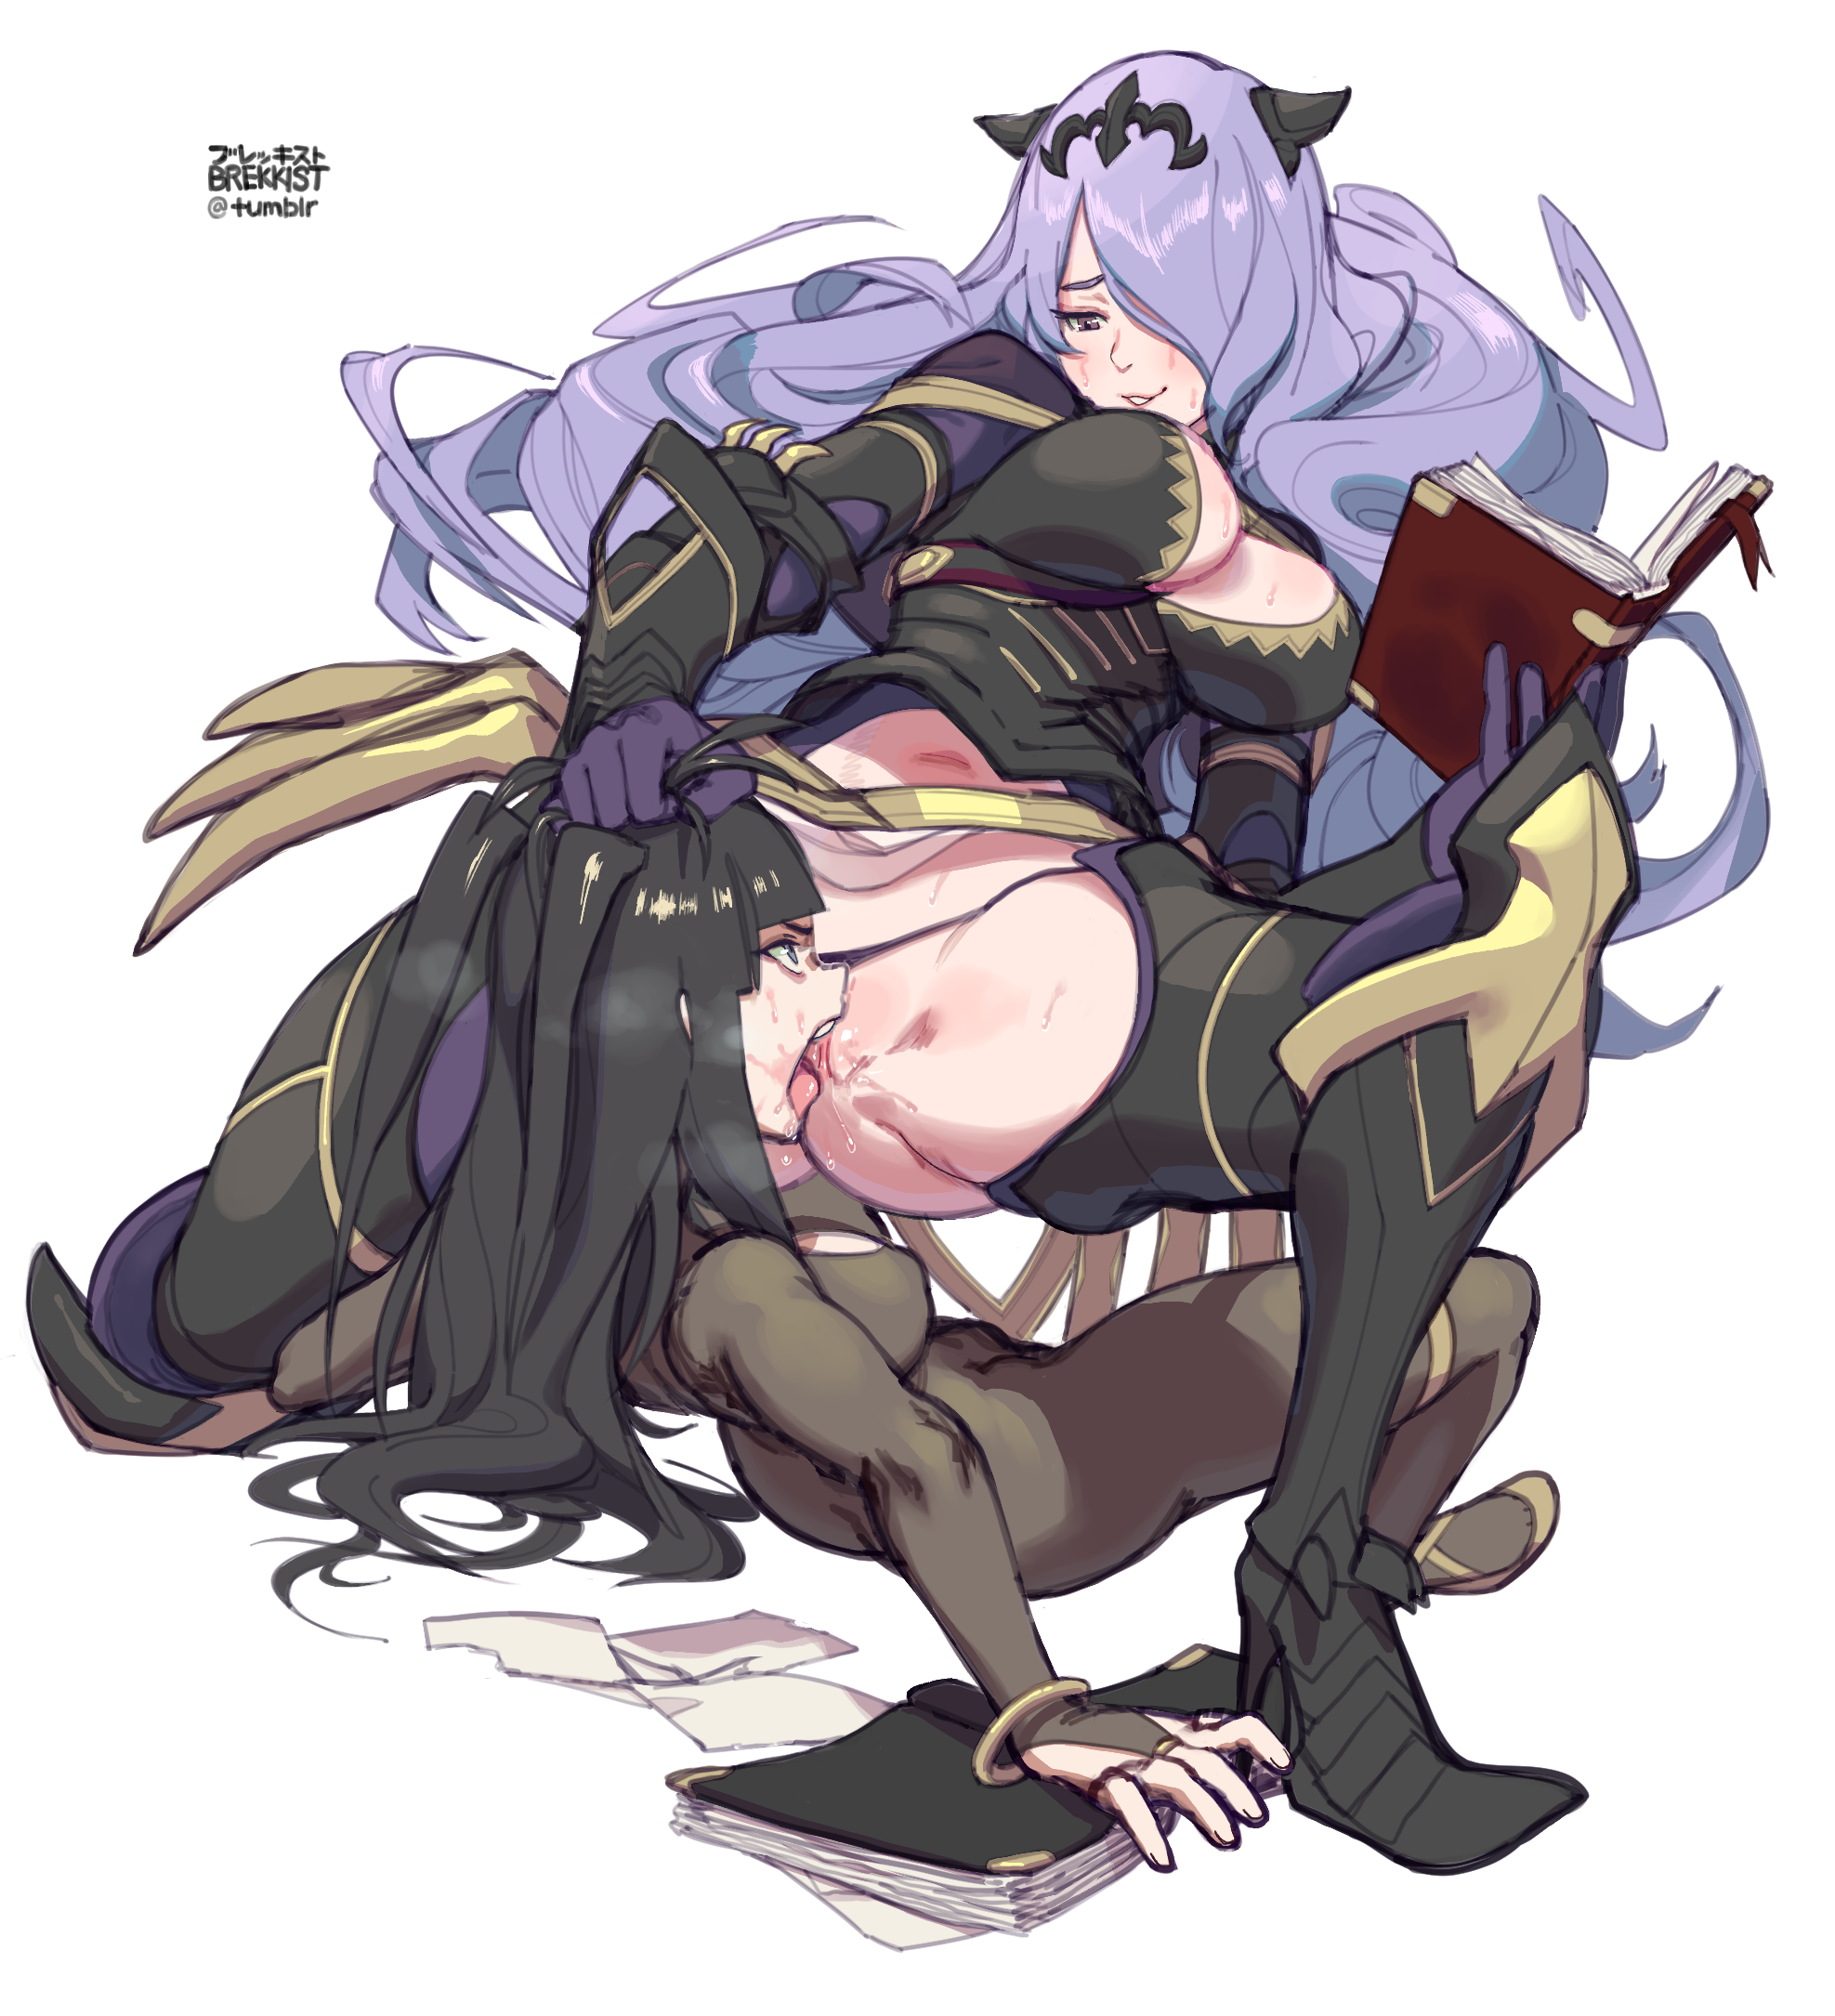 Fire Emblem Porn Pics with camilla and tharja (fire emblem, fire emblem: kakusei, and fire